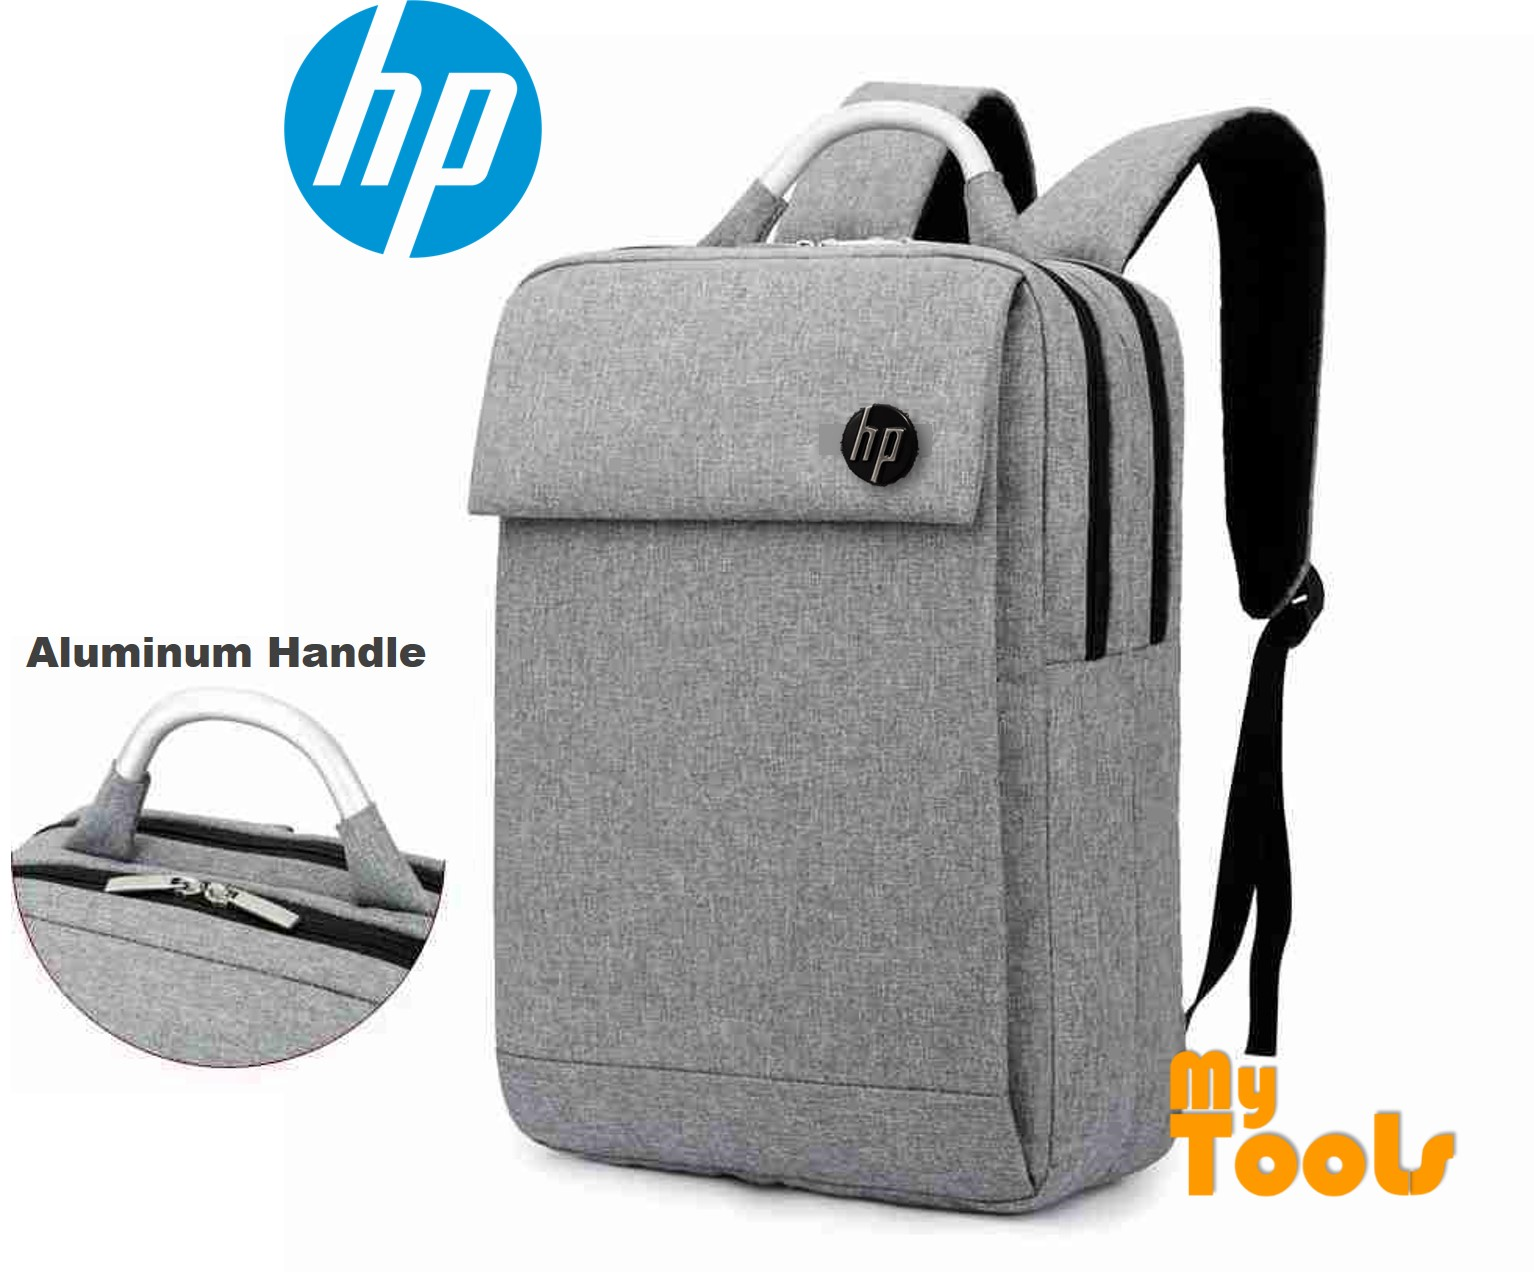 HP Notebook Laptop 15.6 inch Double Layer Backpack Bag Aluminium Handle